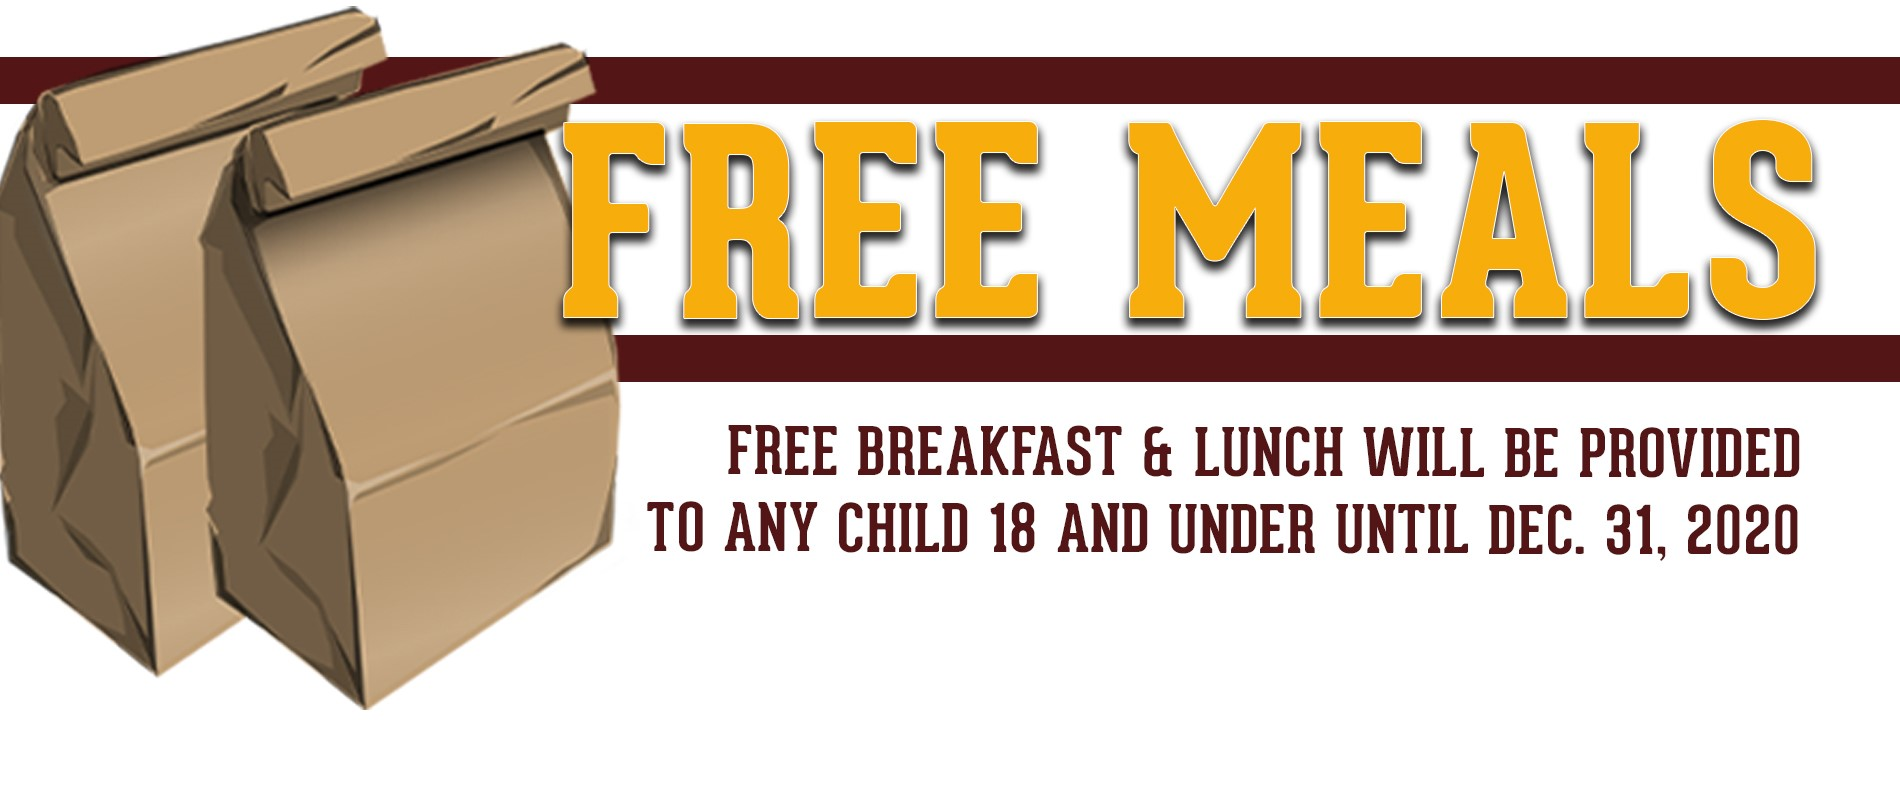 Free Meals click for more information